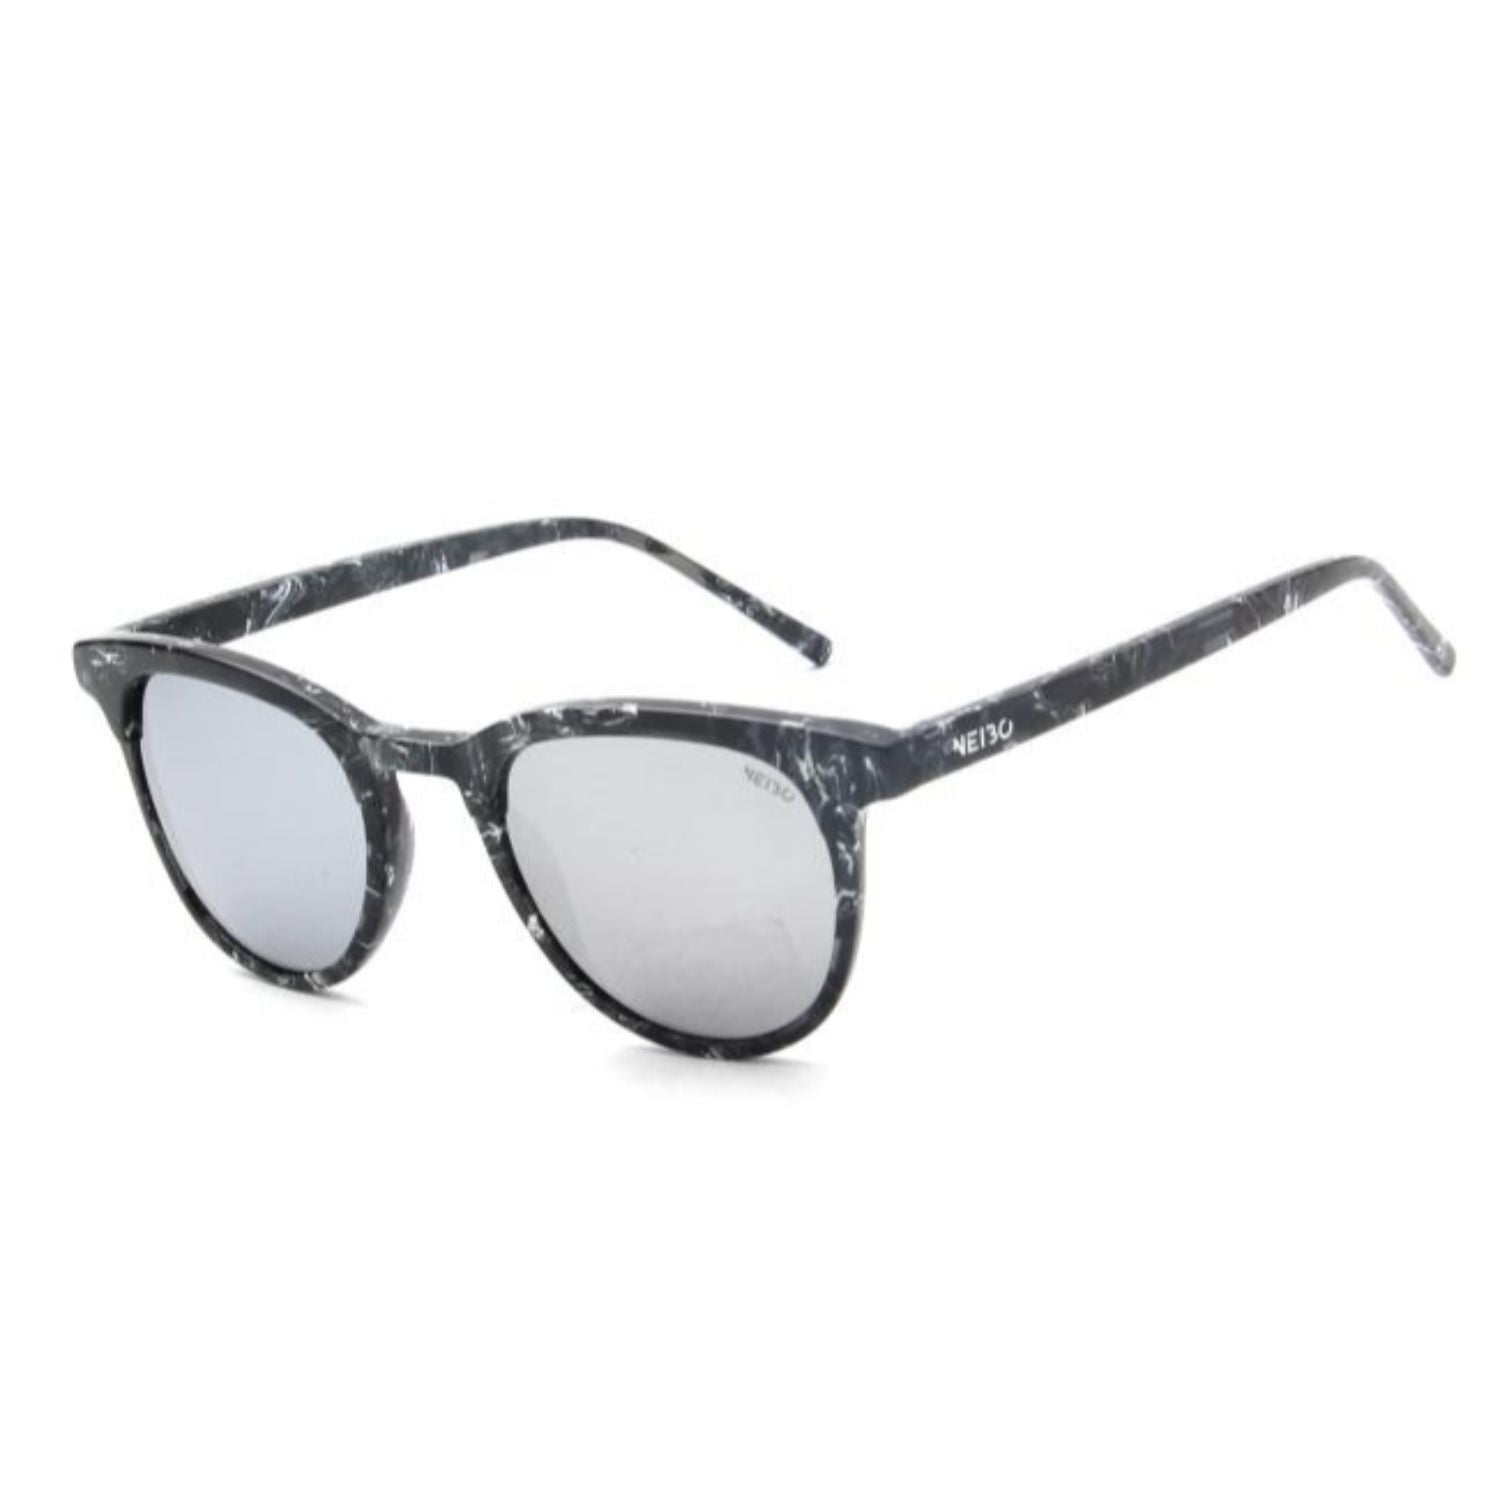 SA11 - Classic Circle Round Unisex Fashion Designer Sunglasses - Iris Fashion Inc. | Wholesale Sunglasses and Glasses